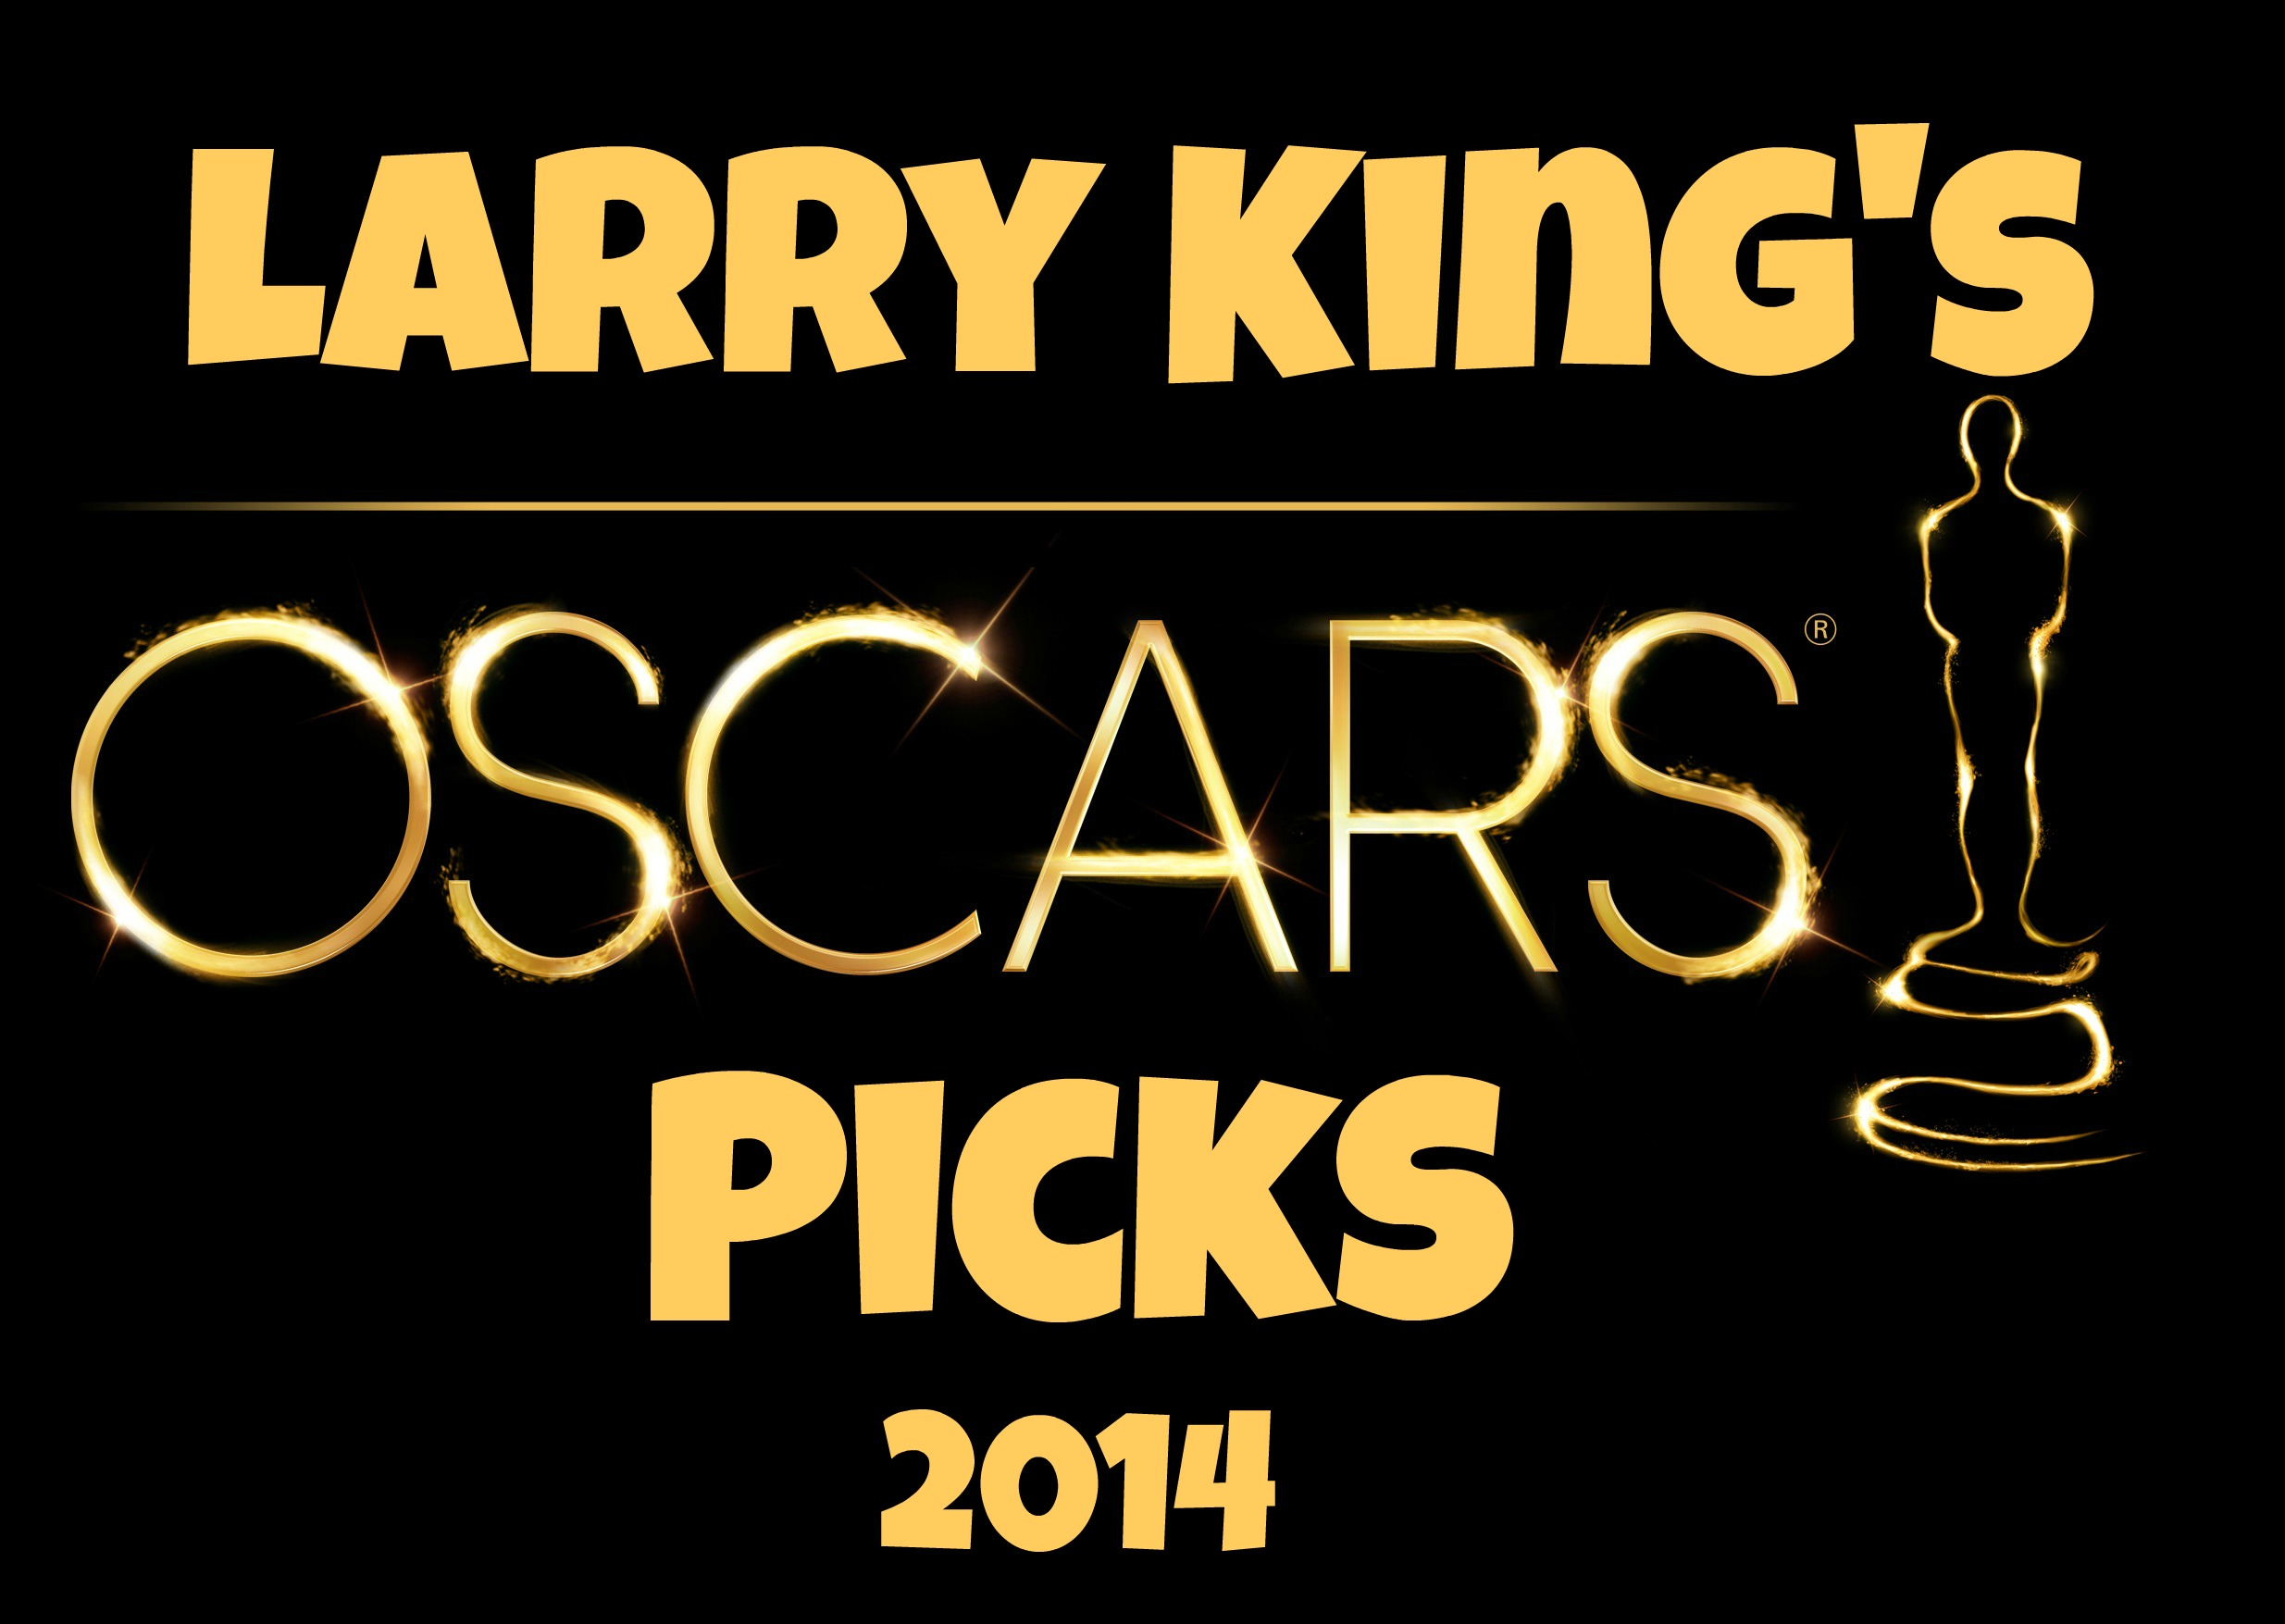 Larry King's Oscars Picks 2014